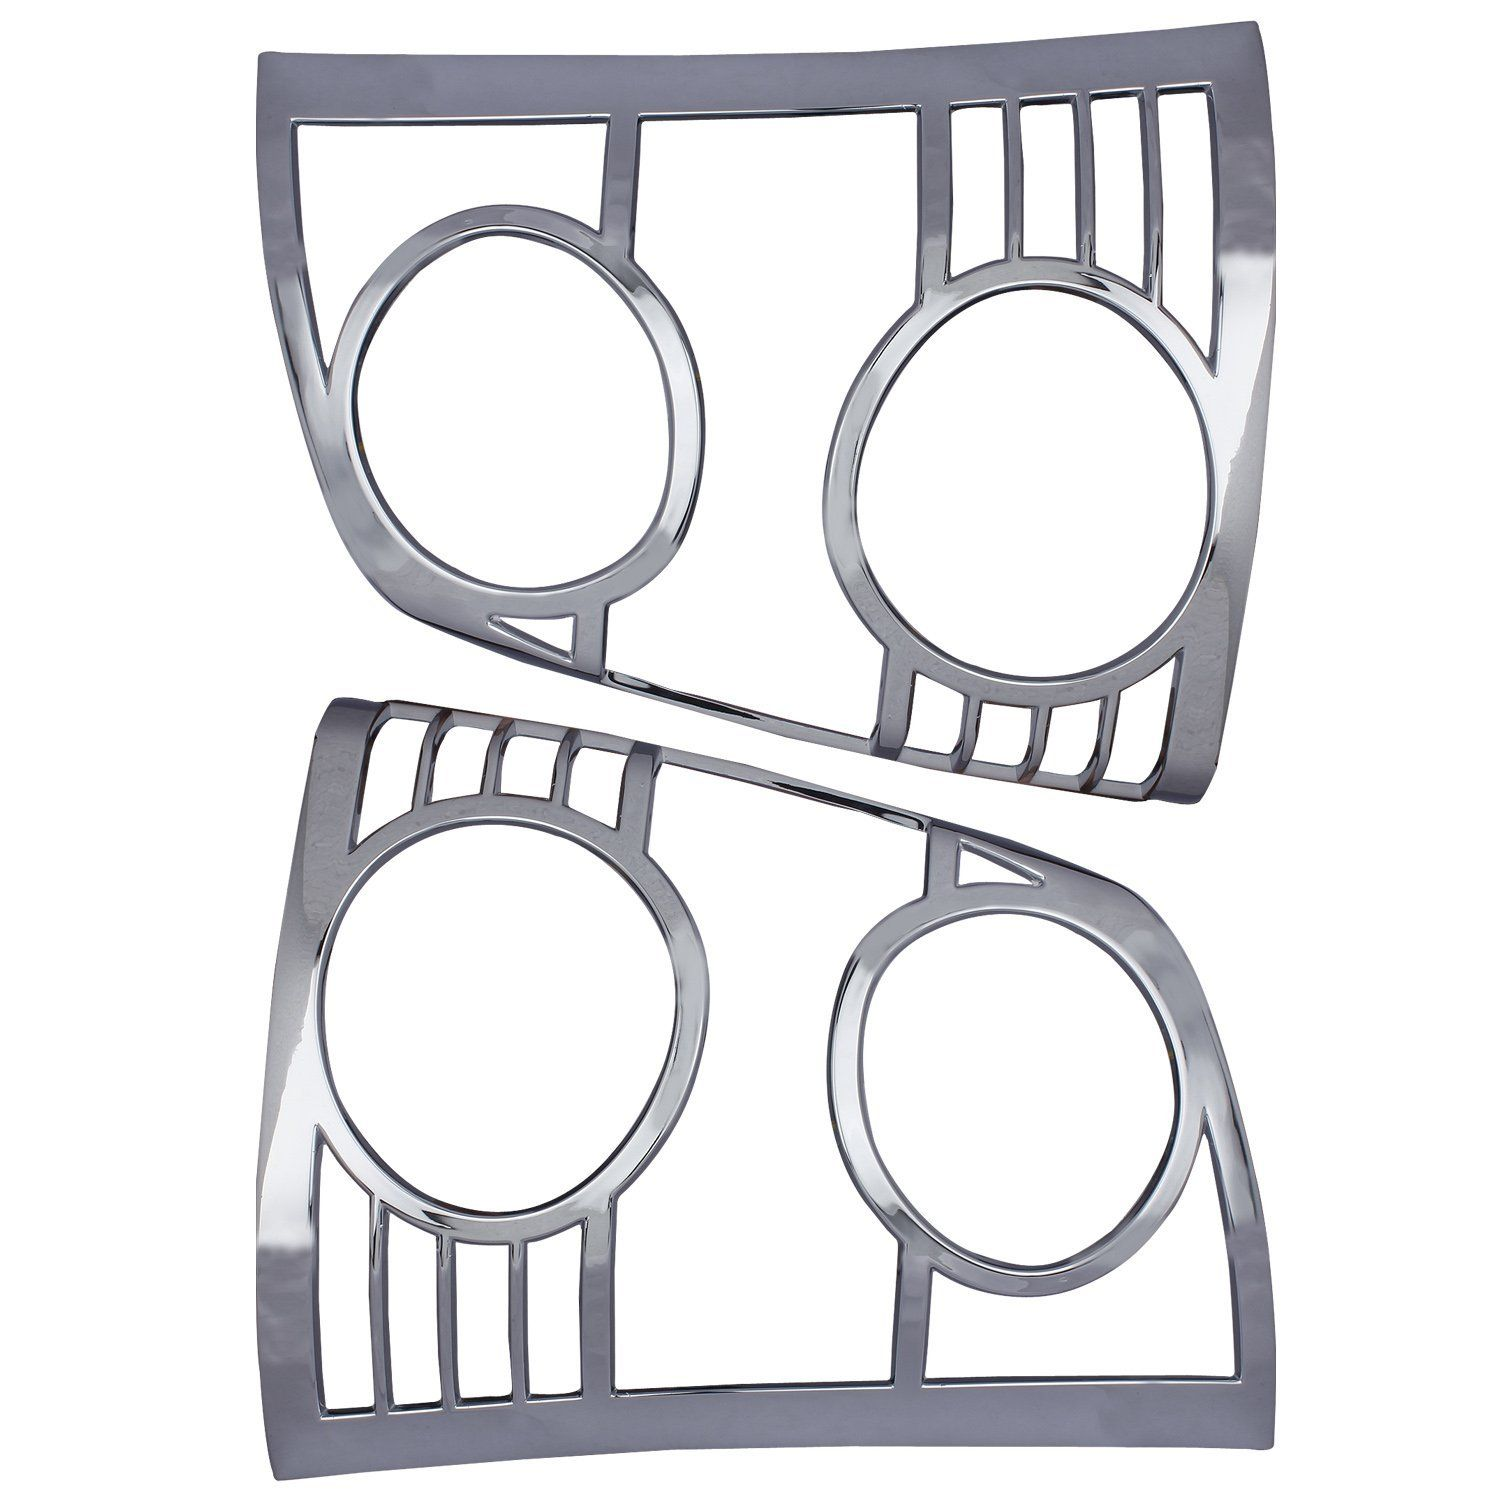 TAIL LAMP MOULDINGS FOR TOYOTA INNOVA TYPE III & IV (SET OF 2PCS)